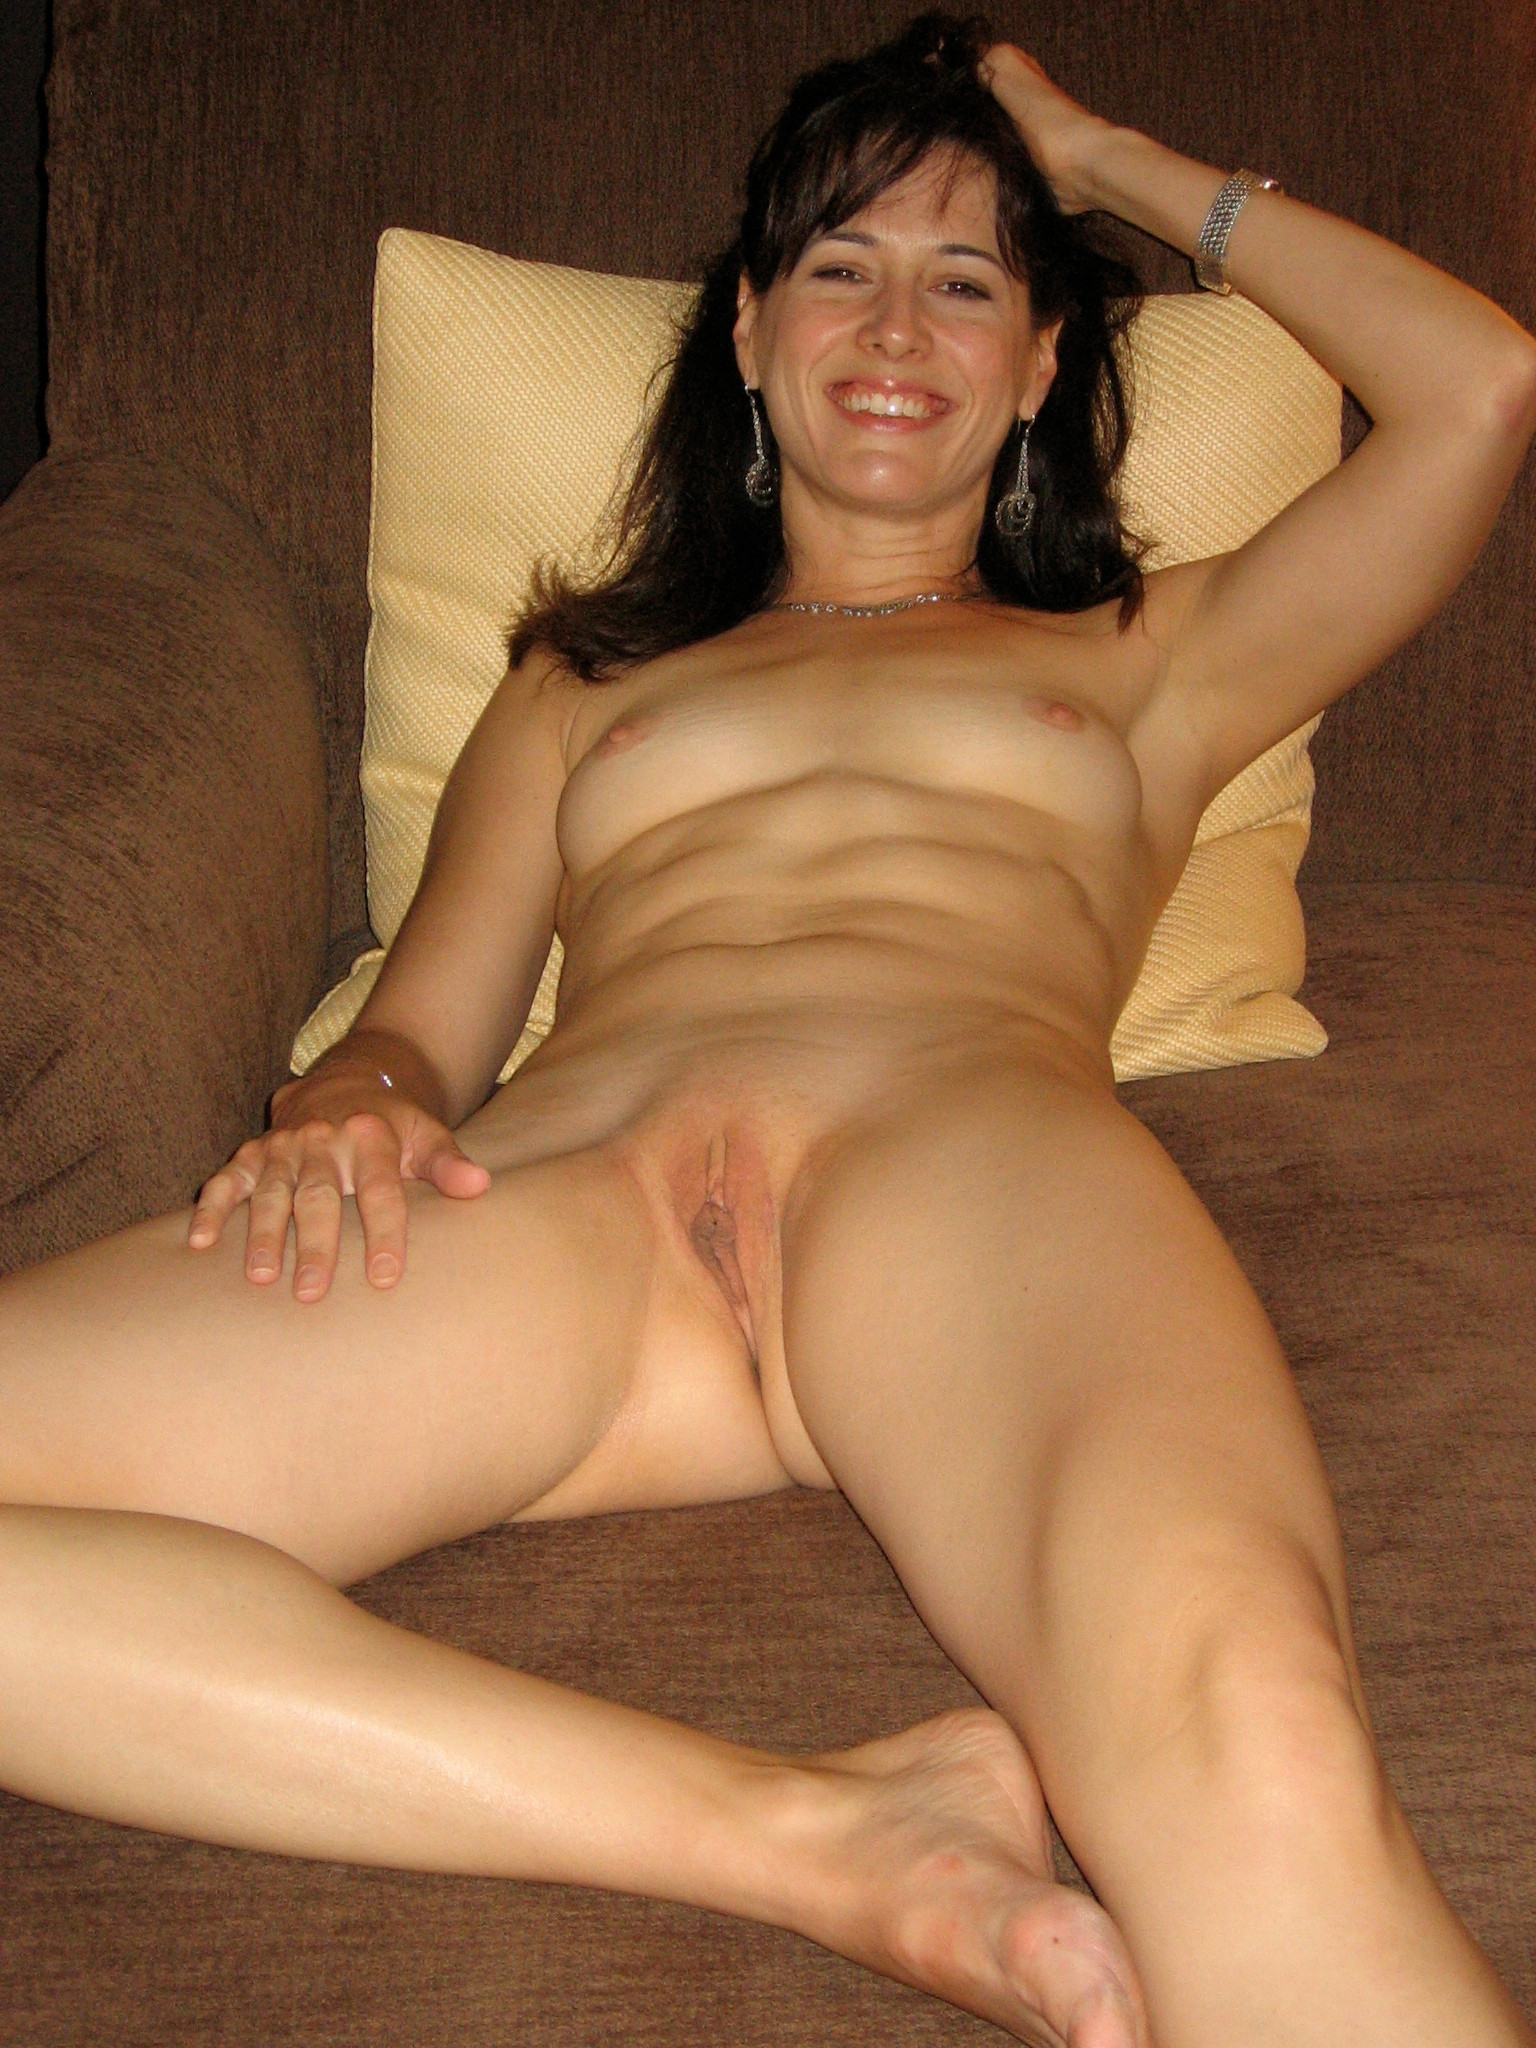 Black stocking milf pictures